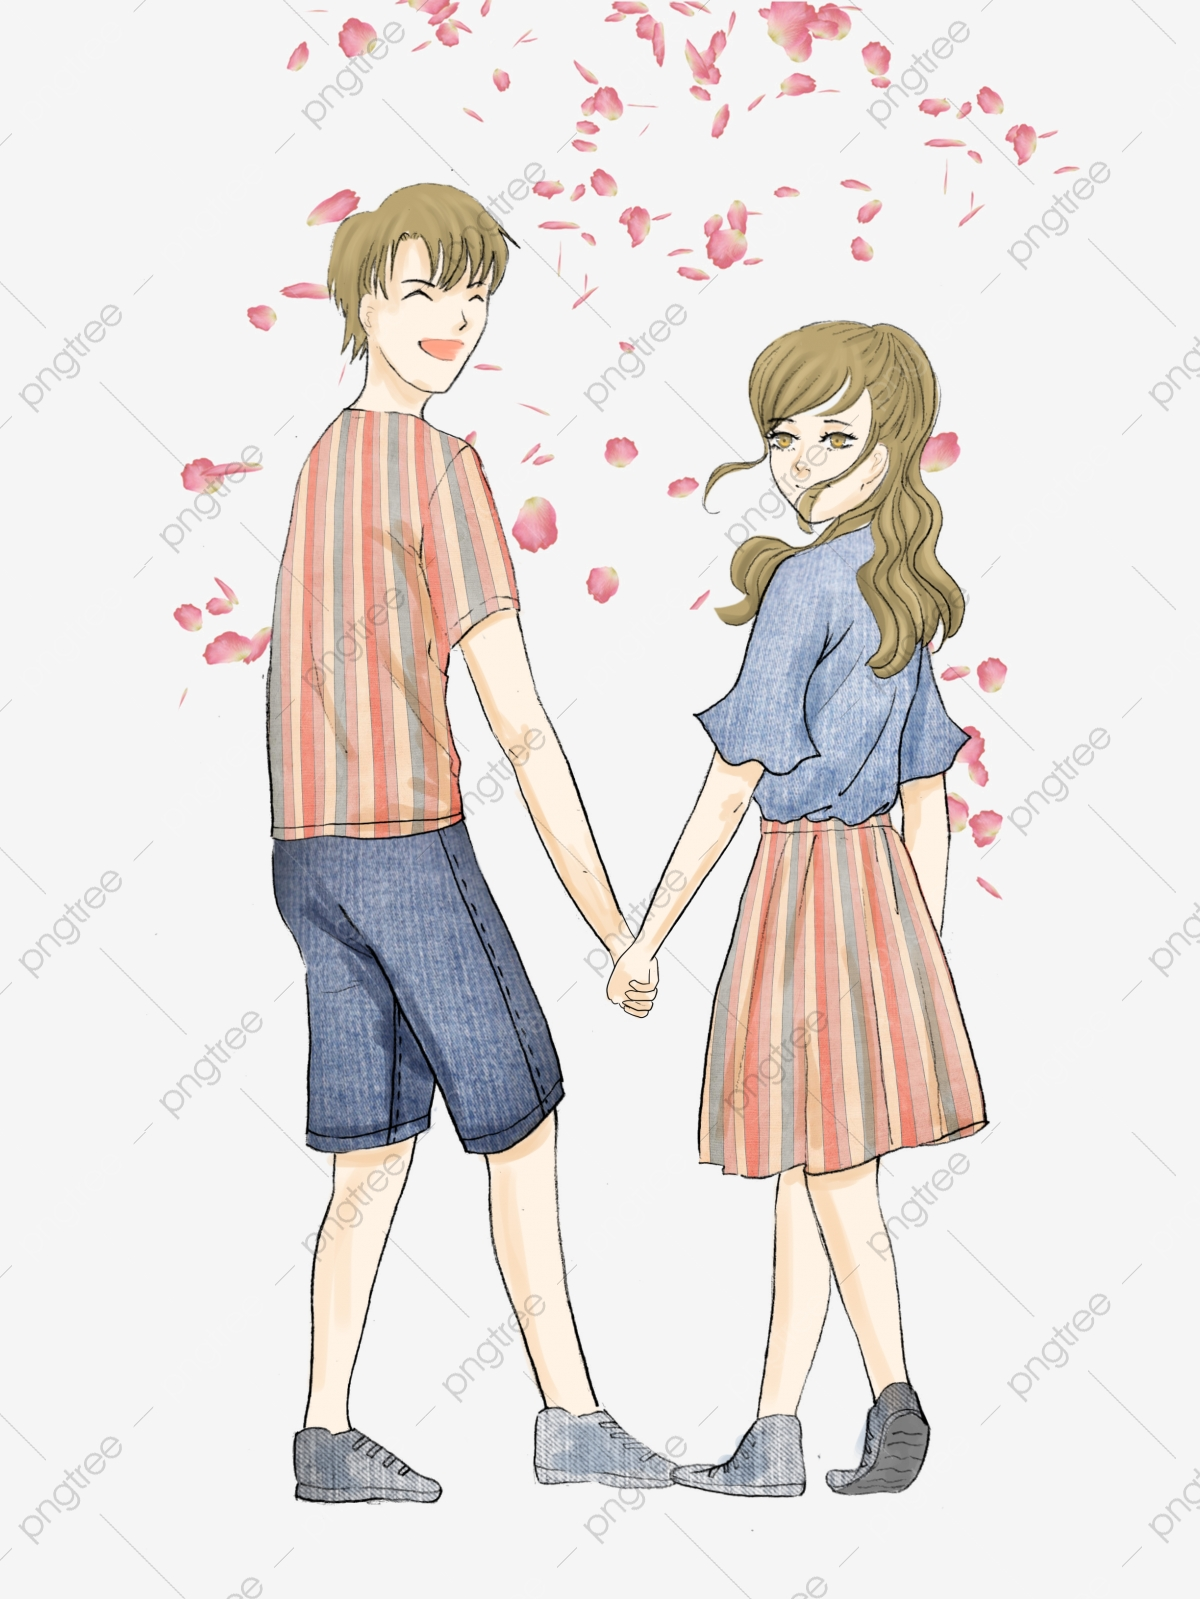 Girl And Boy Holding Hands Drawing : holding, hands, drawing, Tanabata, Valentines, Couple, Wear,, Girl,, Holding, Hands, Transparent, Clipart, Image, Download